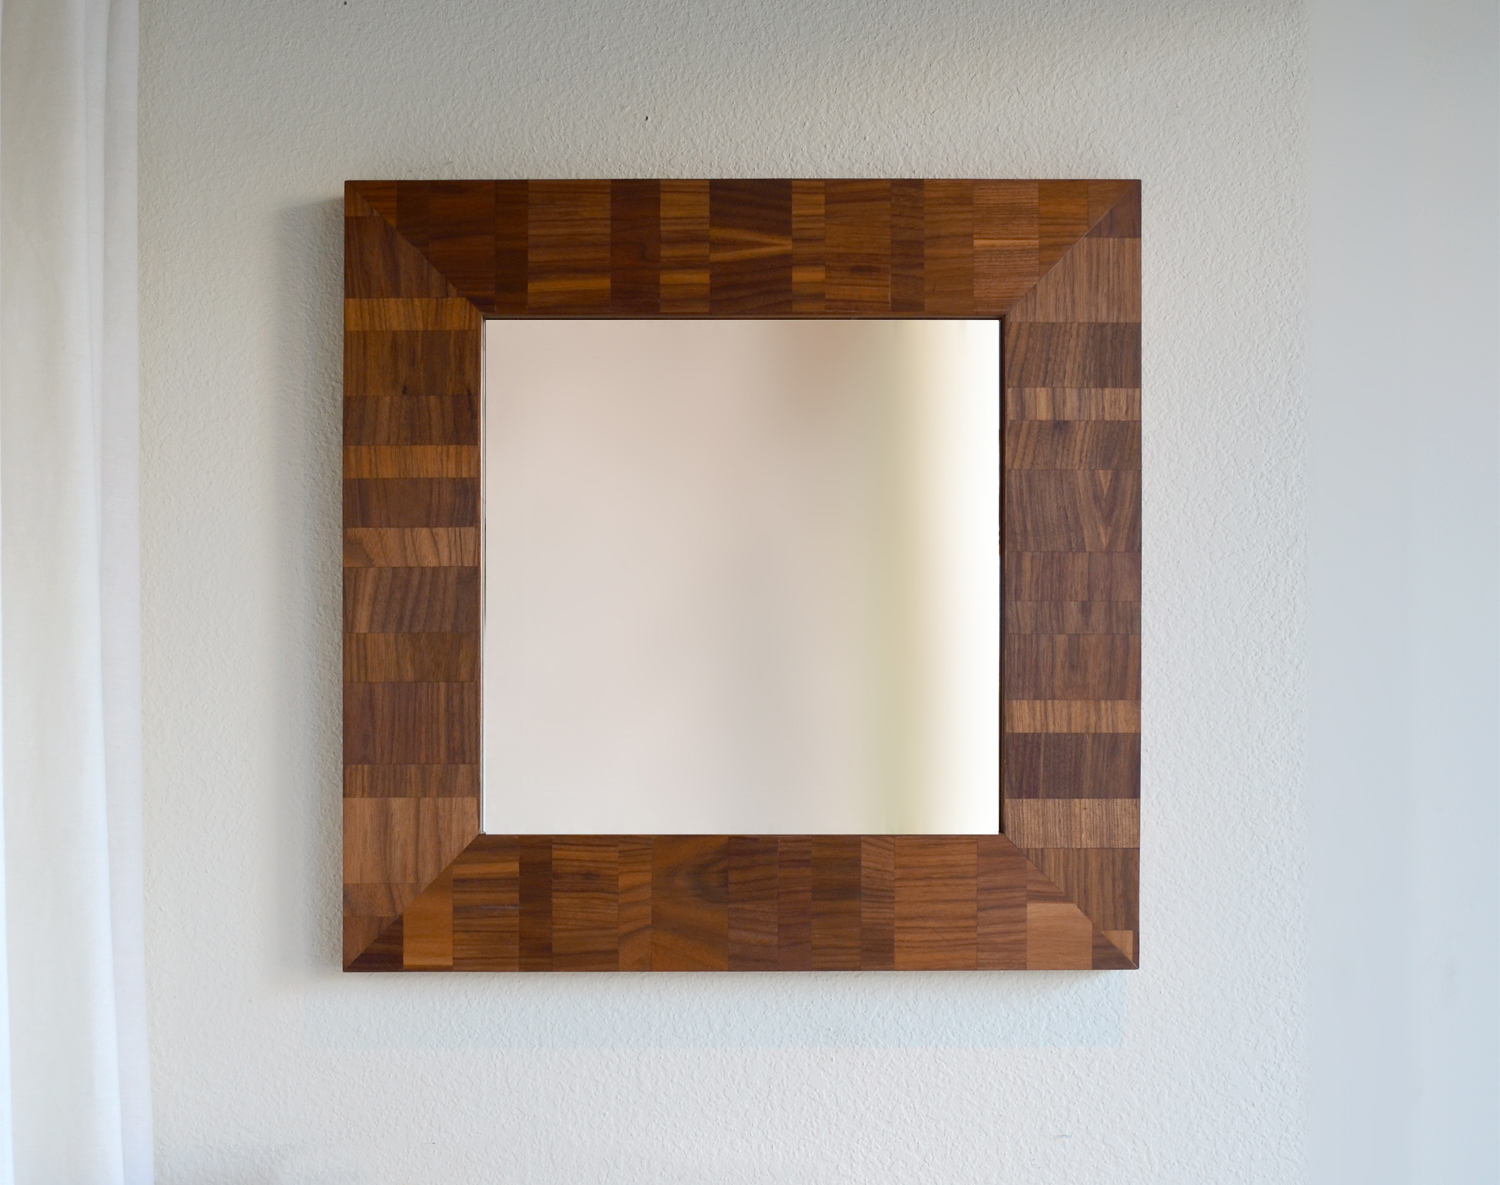 v_walnut_mirror.jpg